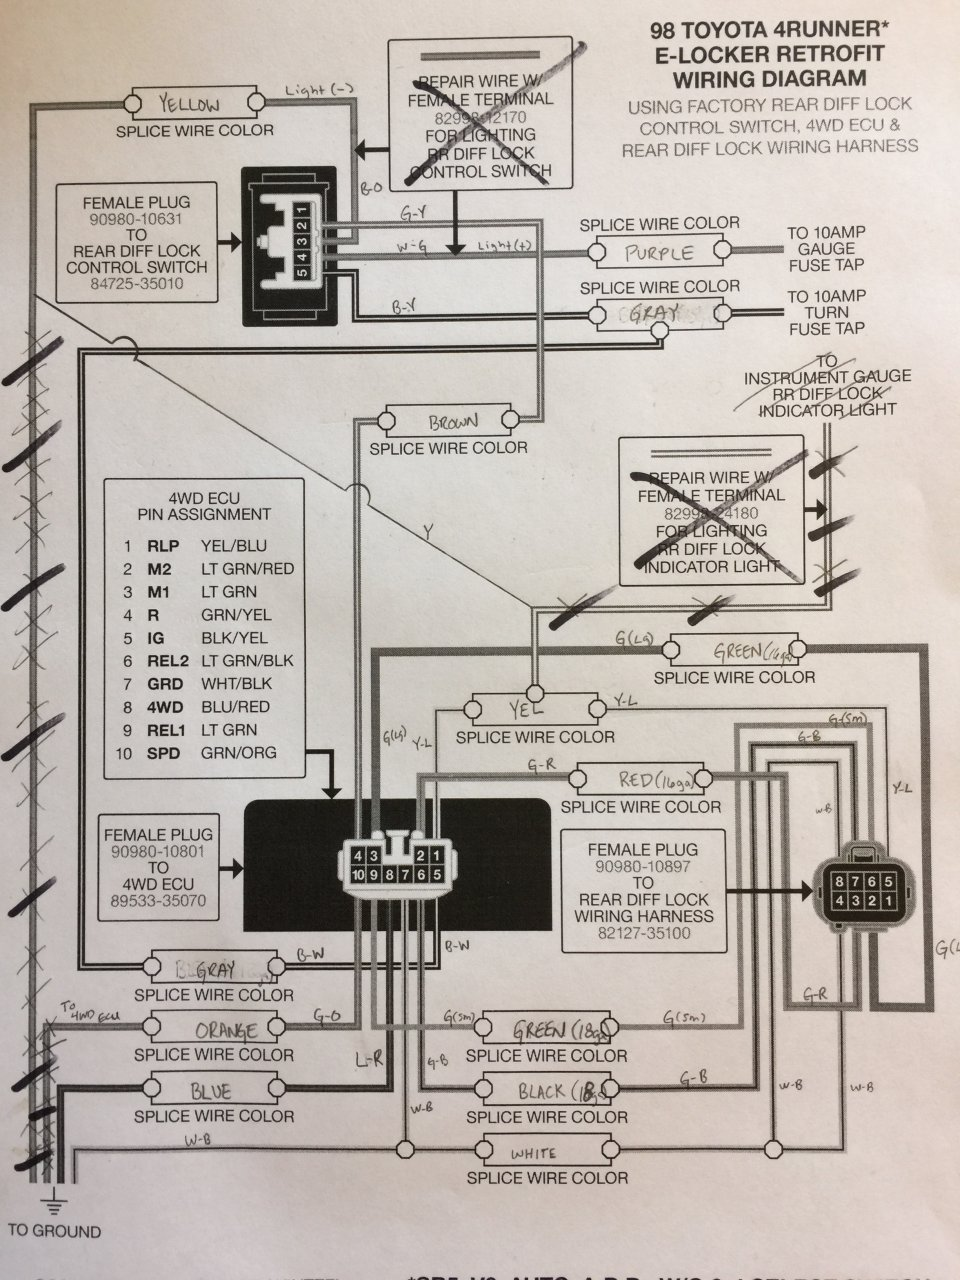 All Excited About The E Locker Then I Noticed This Back To M1 M2 Wiring Diagram Img 9204